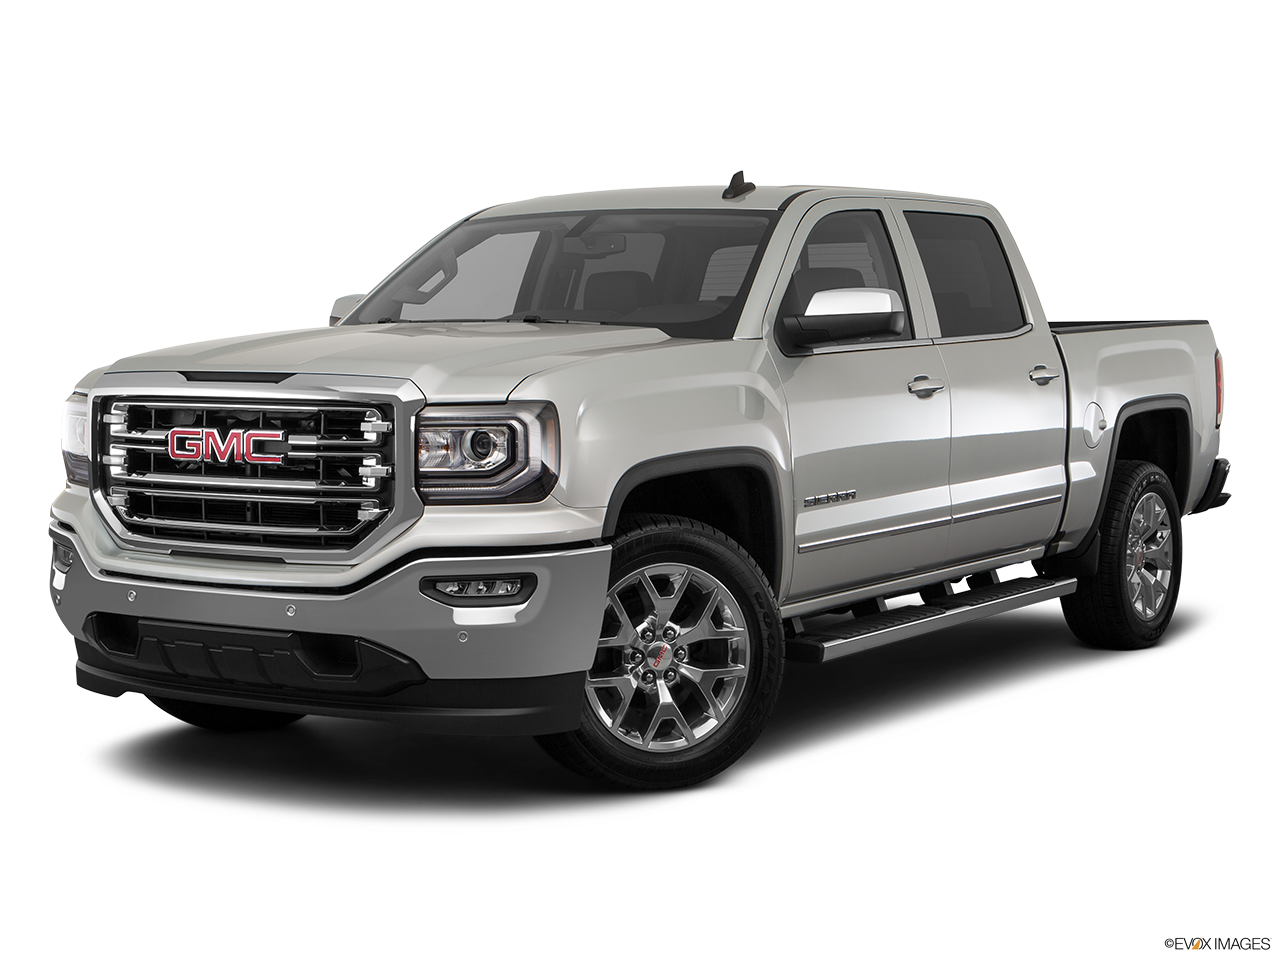 All New Cars Under 15k >> 2017 GMC Sierra 1500 dealer in Orange County | Hardin Buick GMC